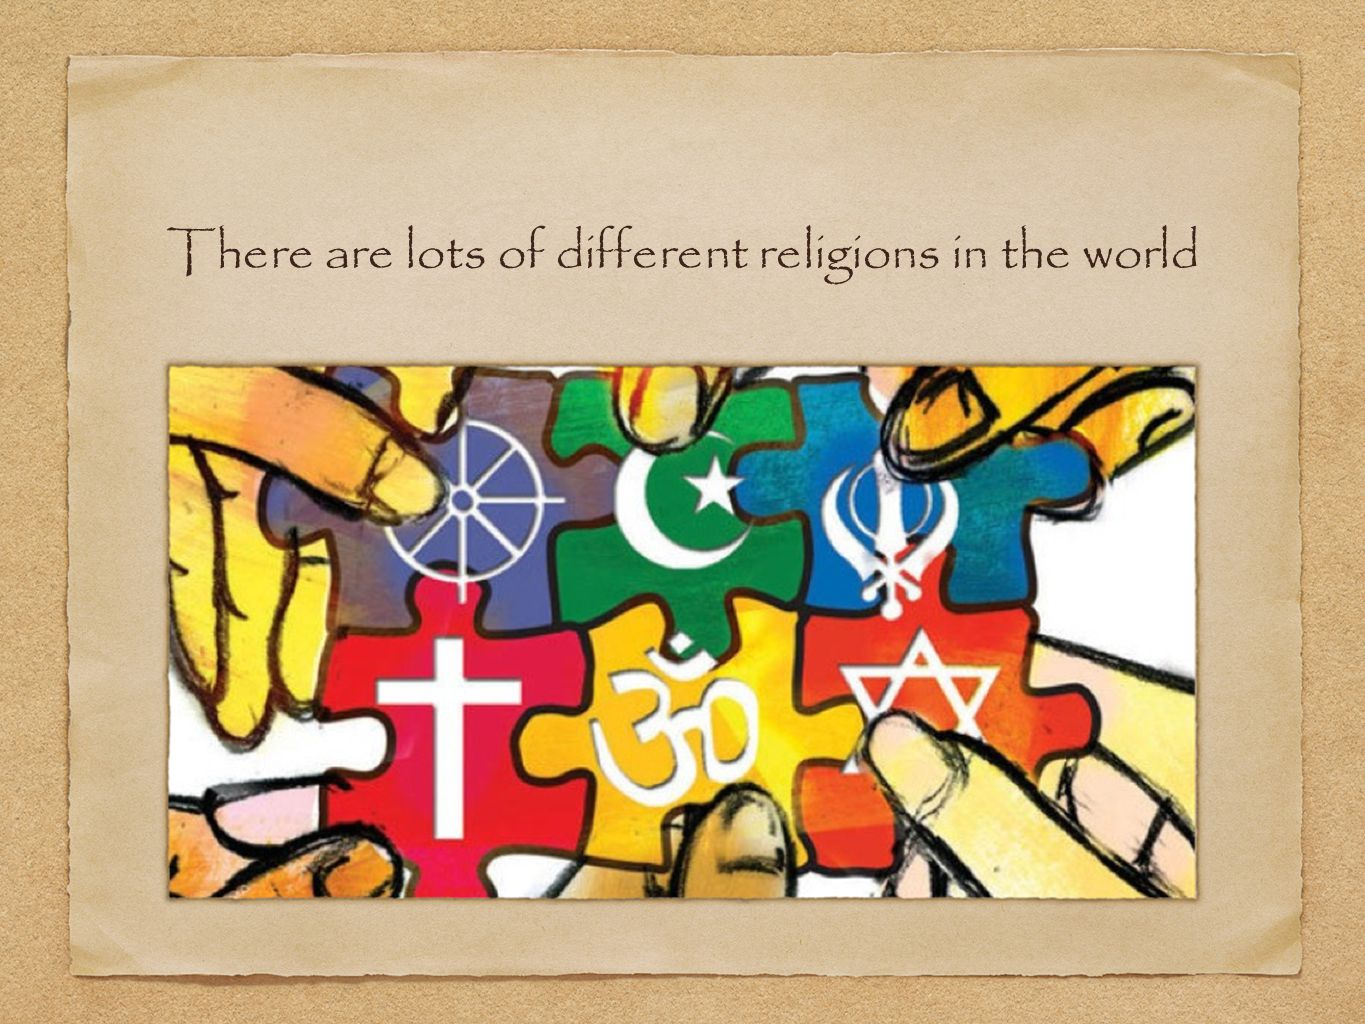 There are lots of different religions in the world